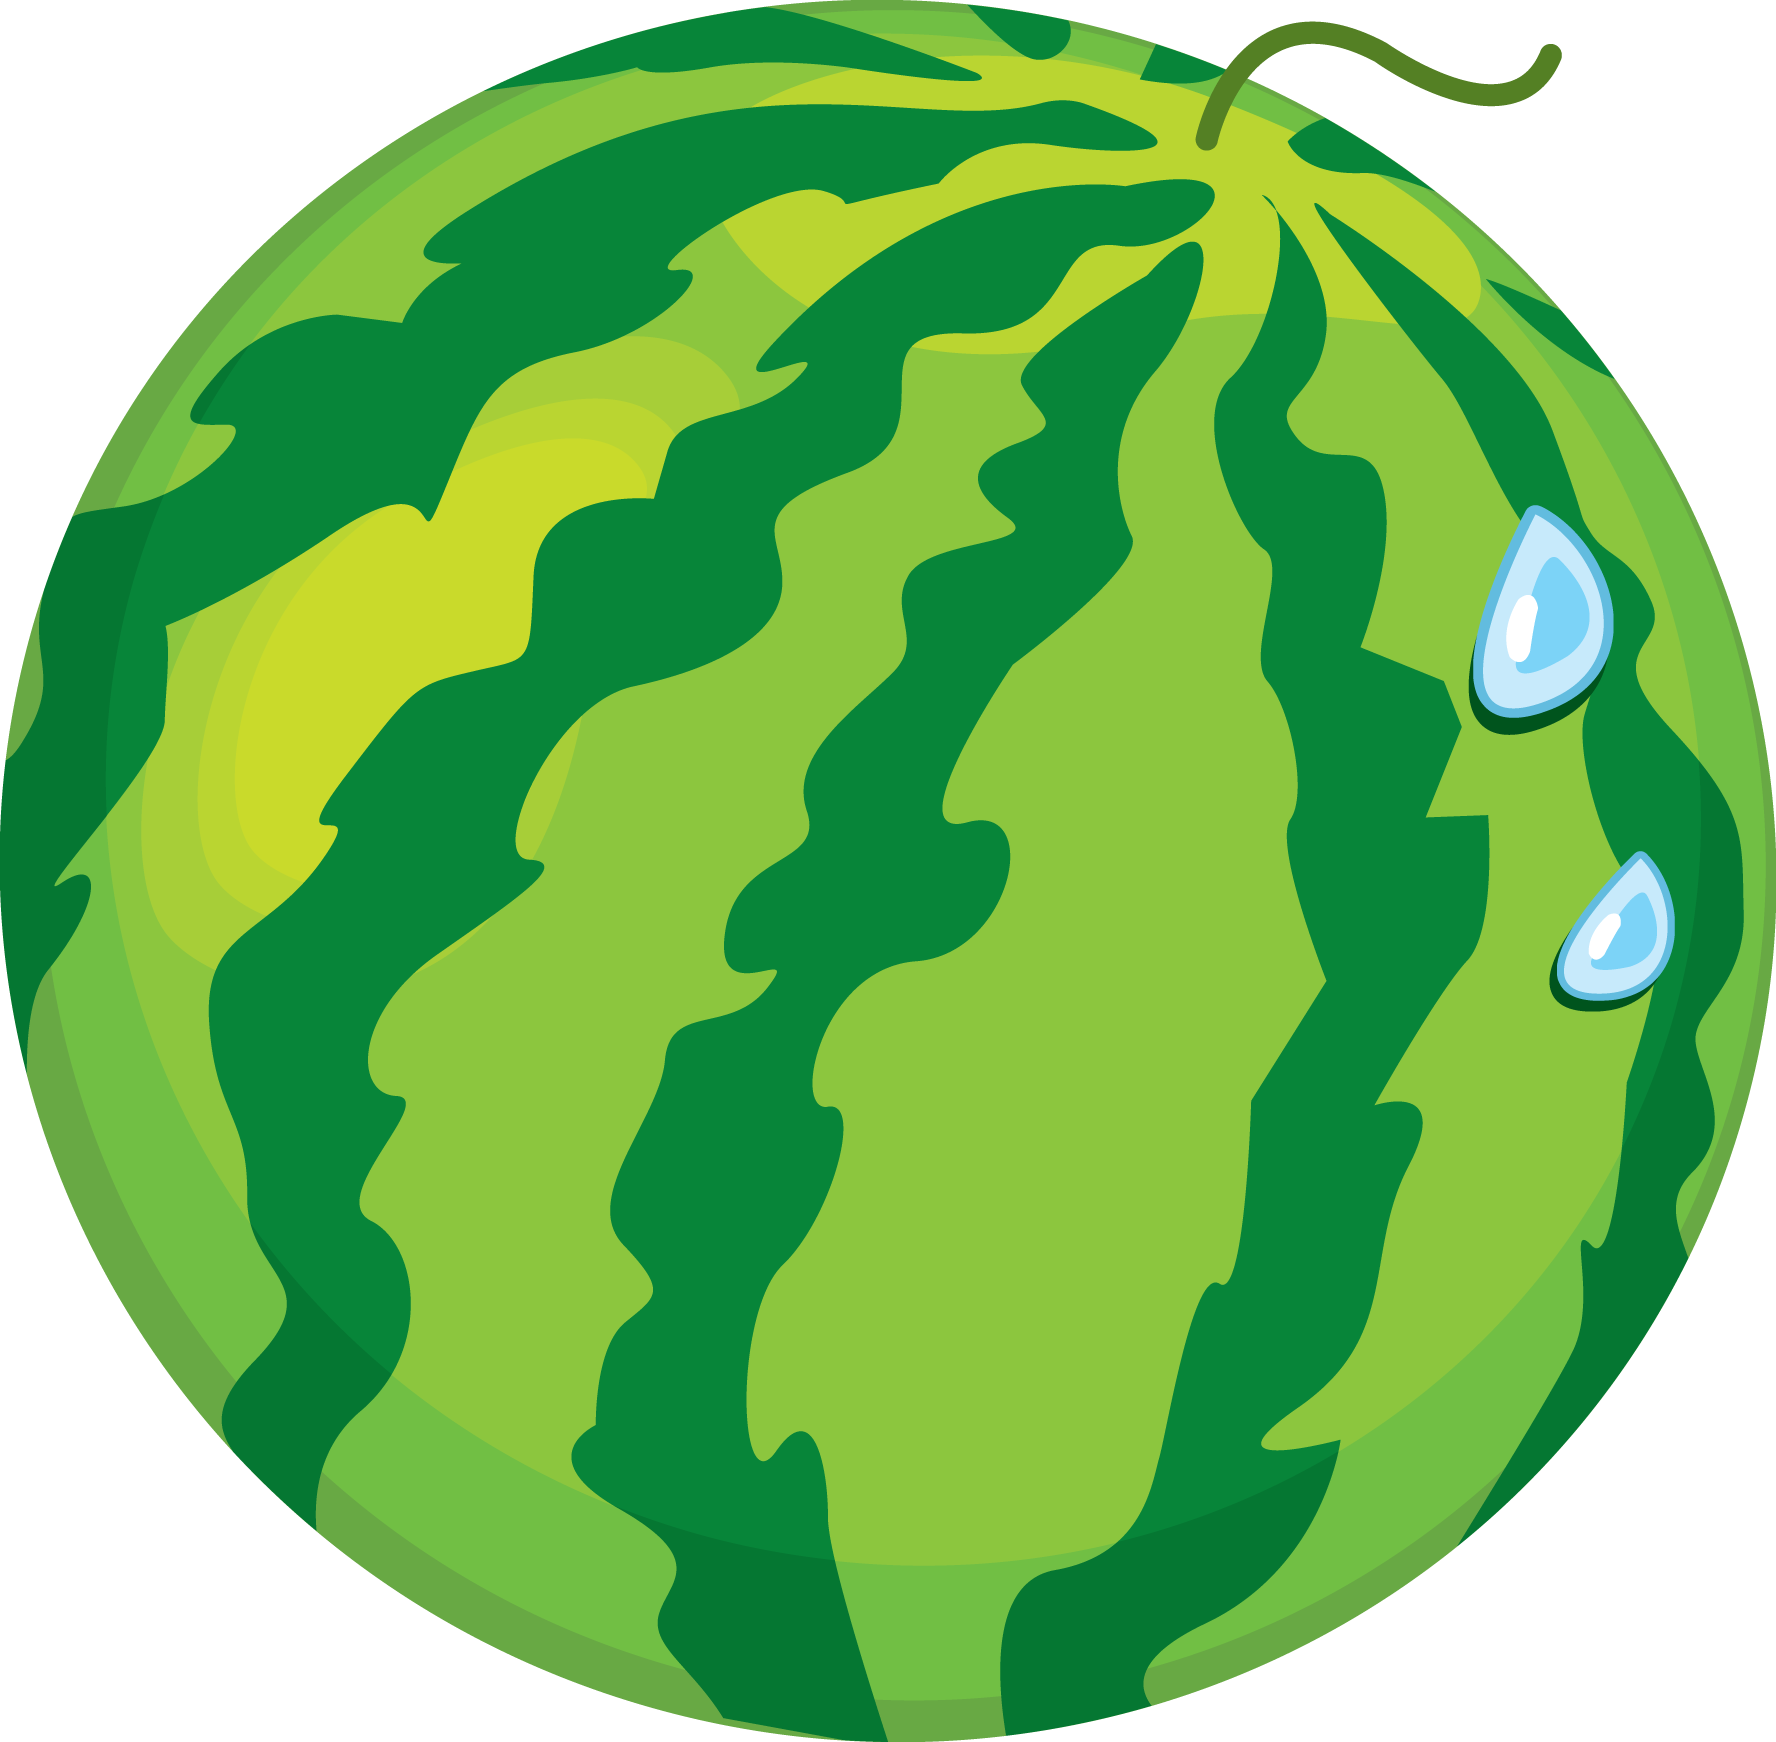 Transparent png image web. Watermelon clipart full